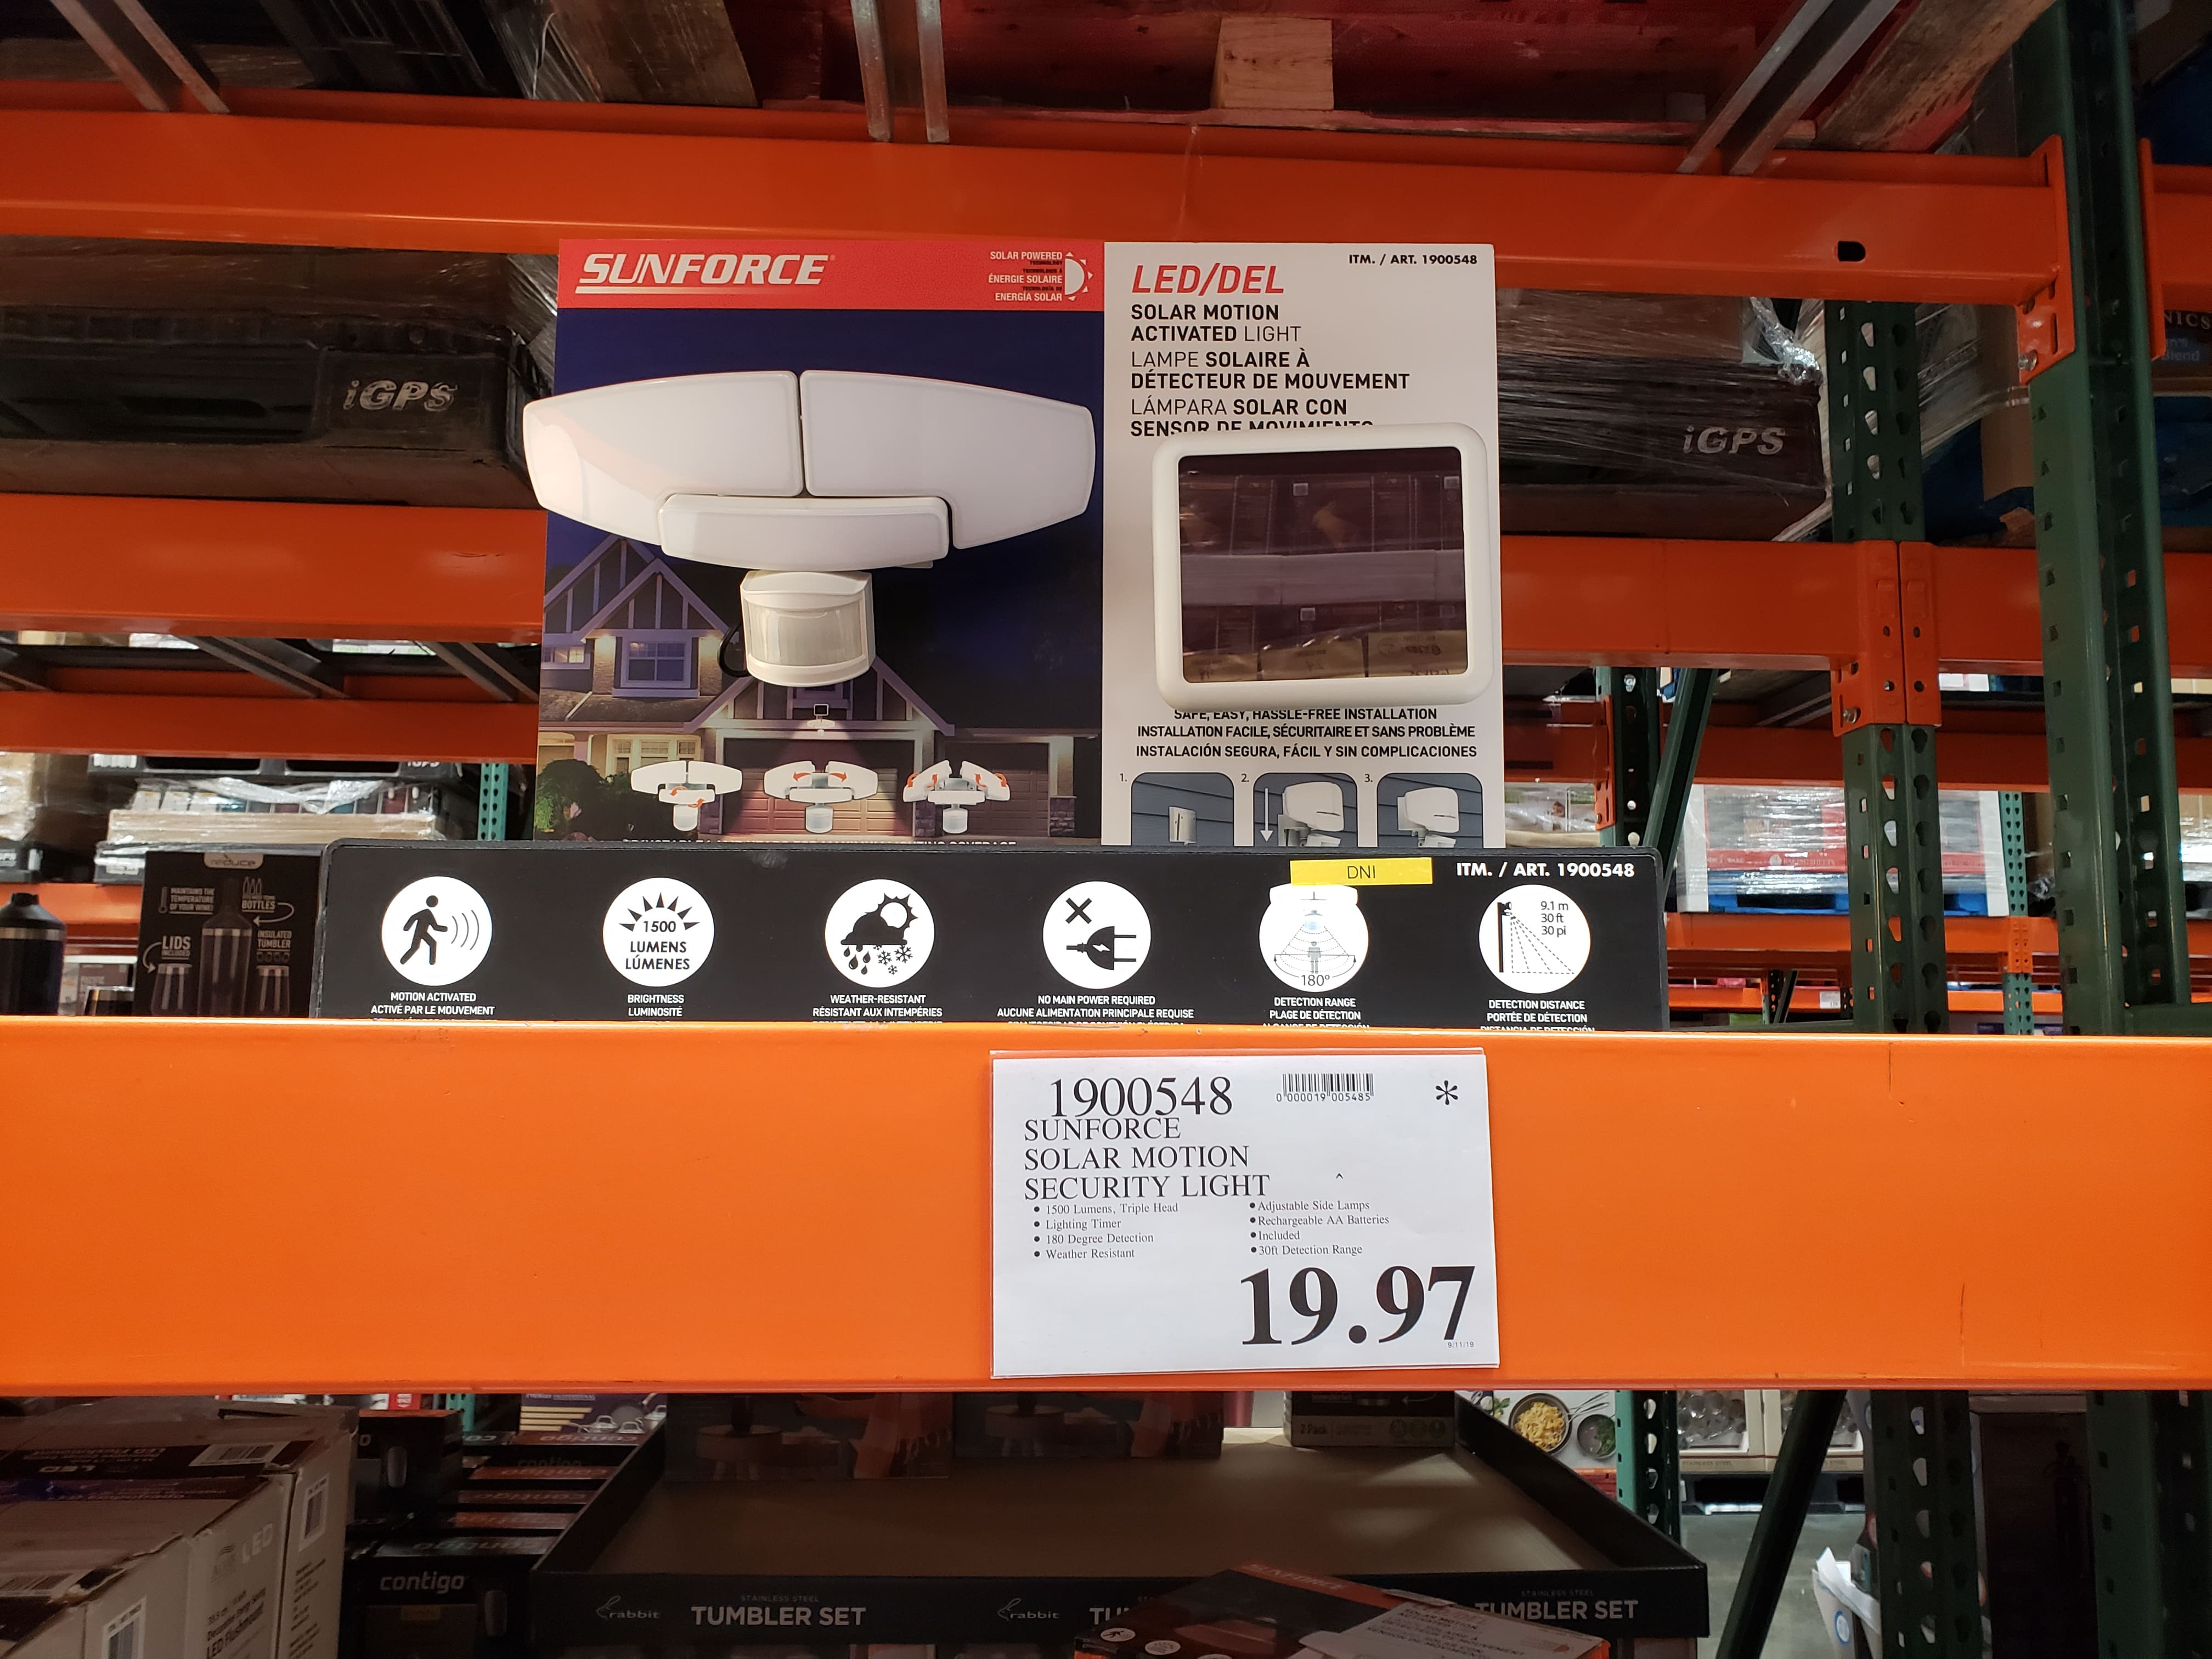 COSTCO B&M Sunforce solar motion security light 1500 lumens $19.97 YMMV